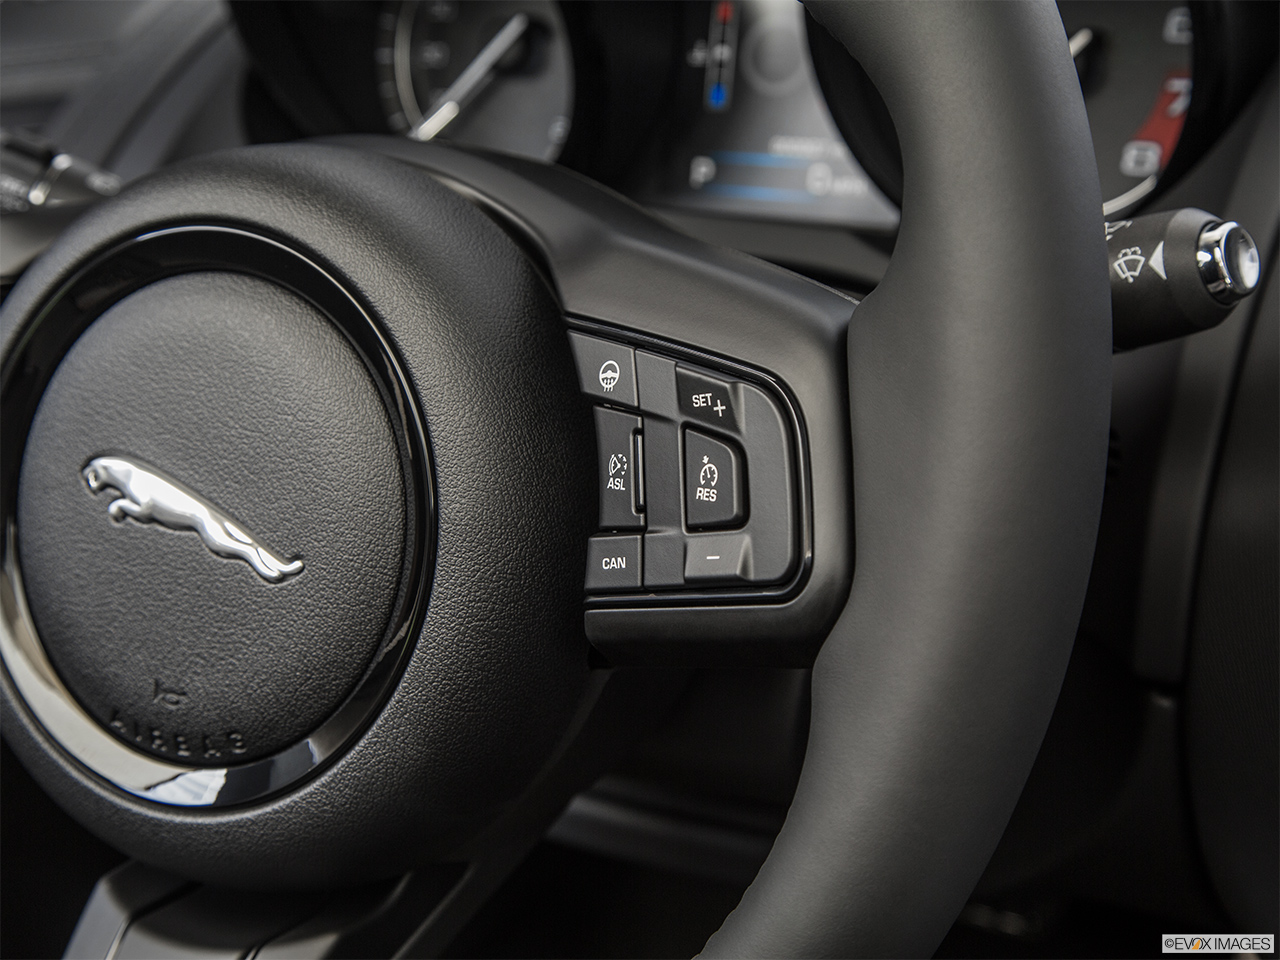 2015 Jaguar F-Type Convertible V8 S Steering Wheel Controls (Right Side)